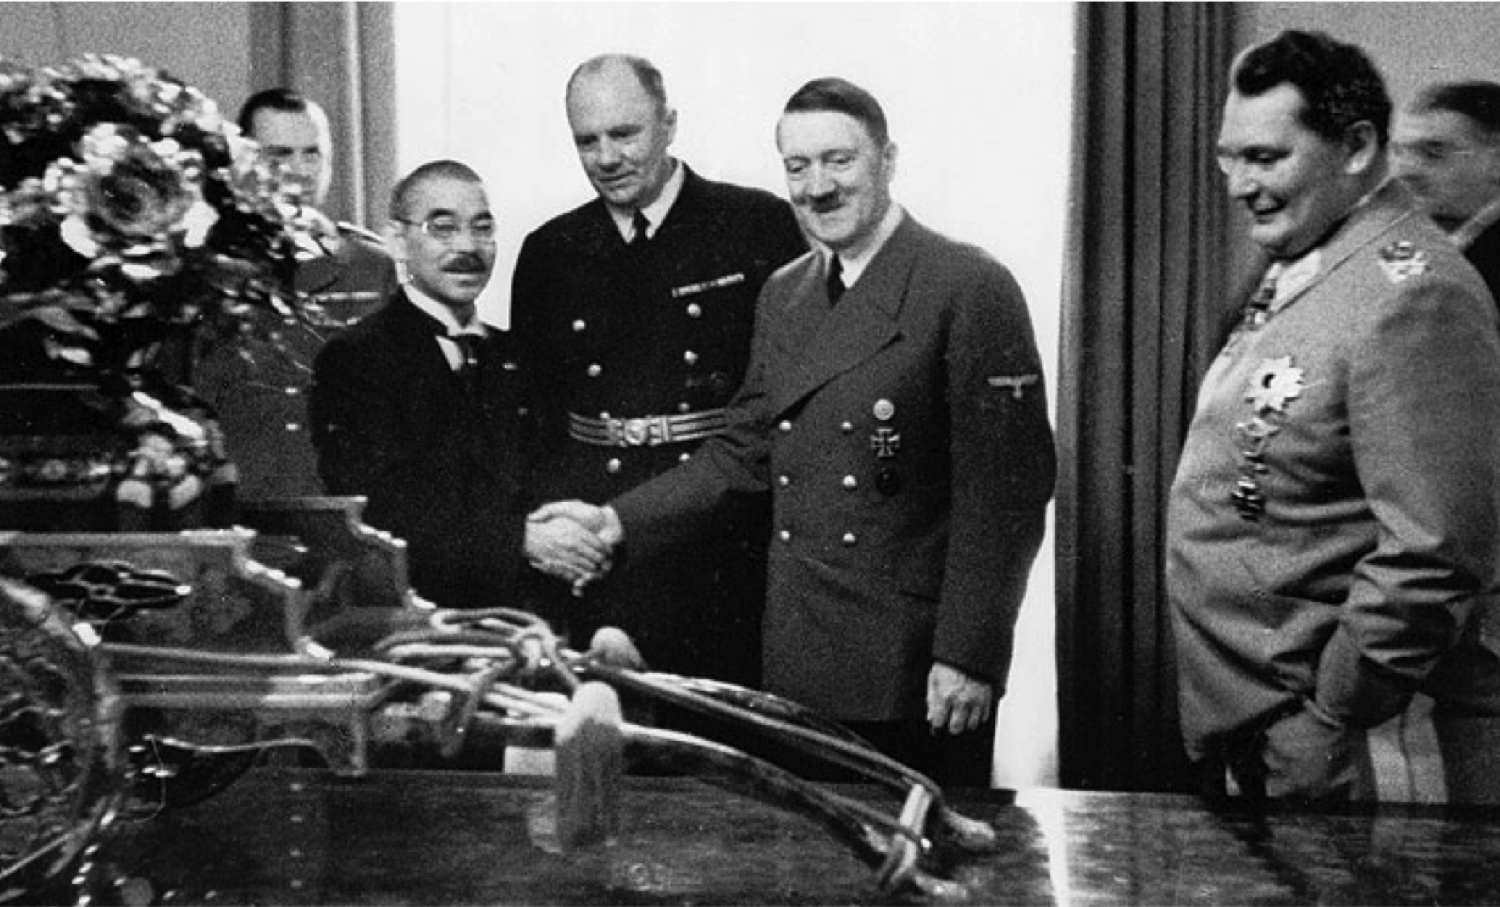 fascist italy nazi germany and imperial japan Other problems: italy was allied with germany bc it was fascist (mussolini invented fascism) russia was not unified until the 19th century, centuries after japan.